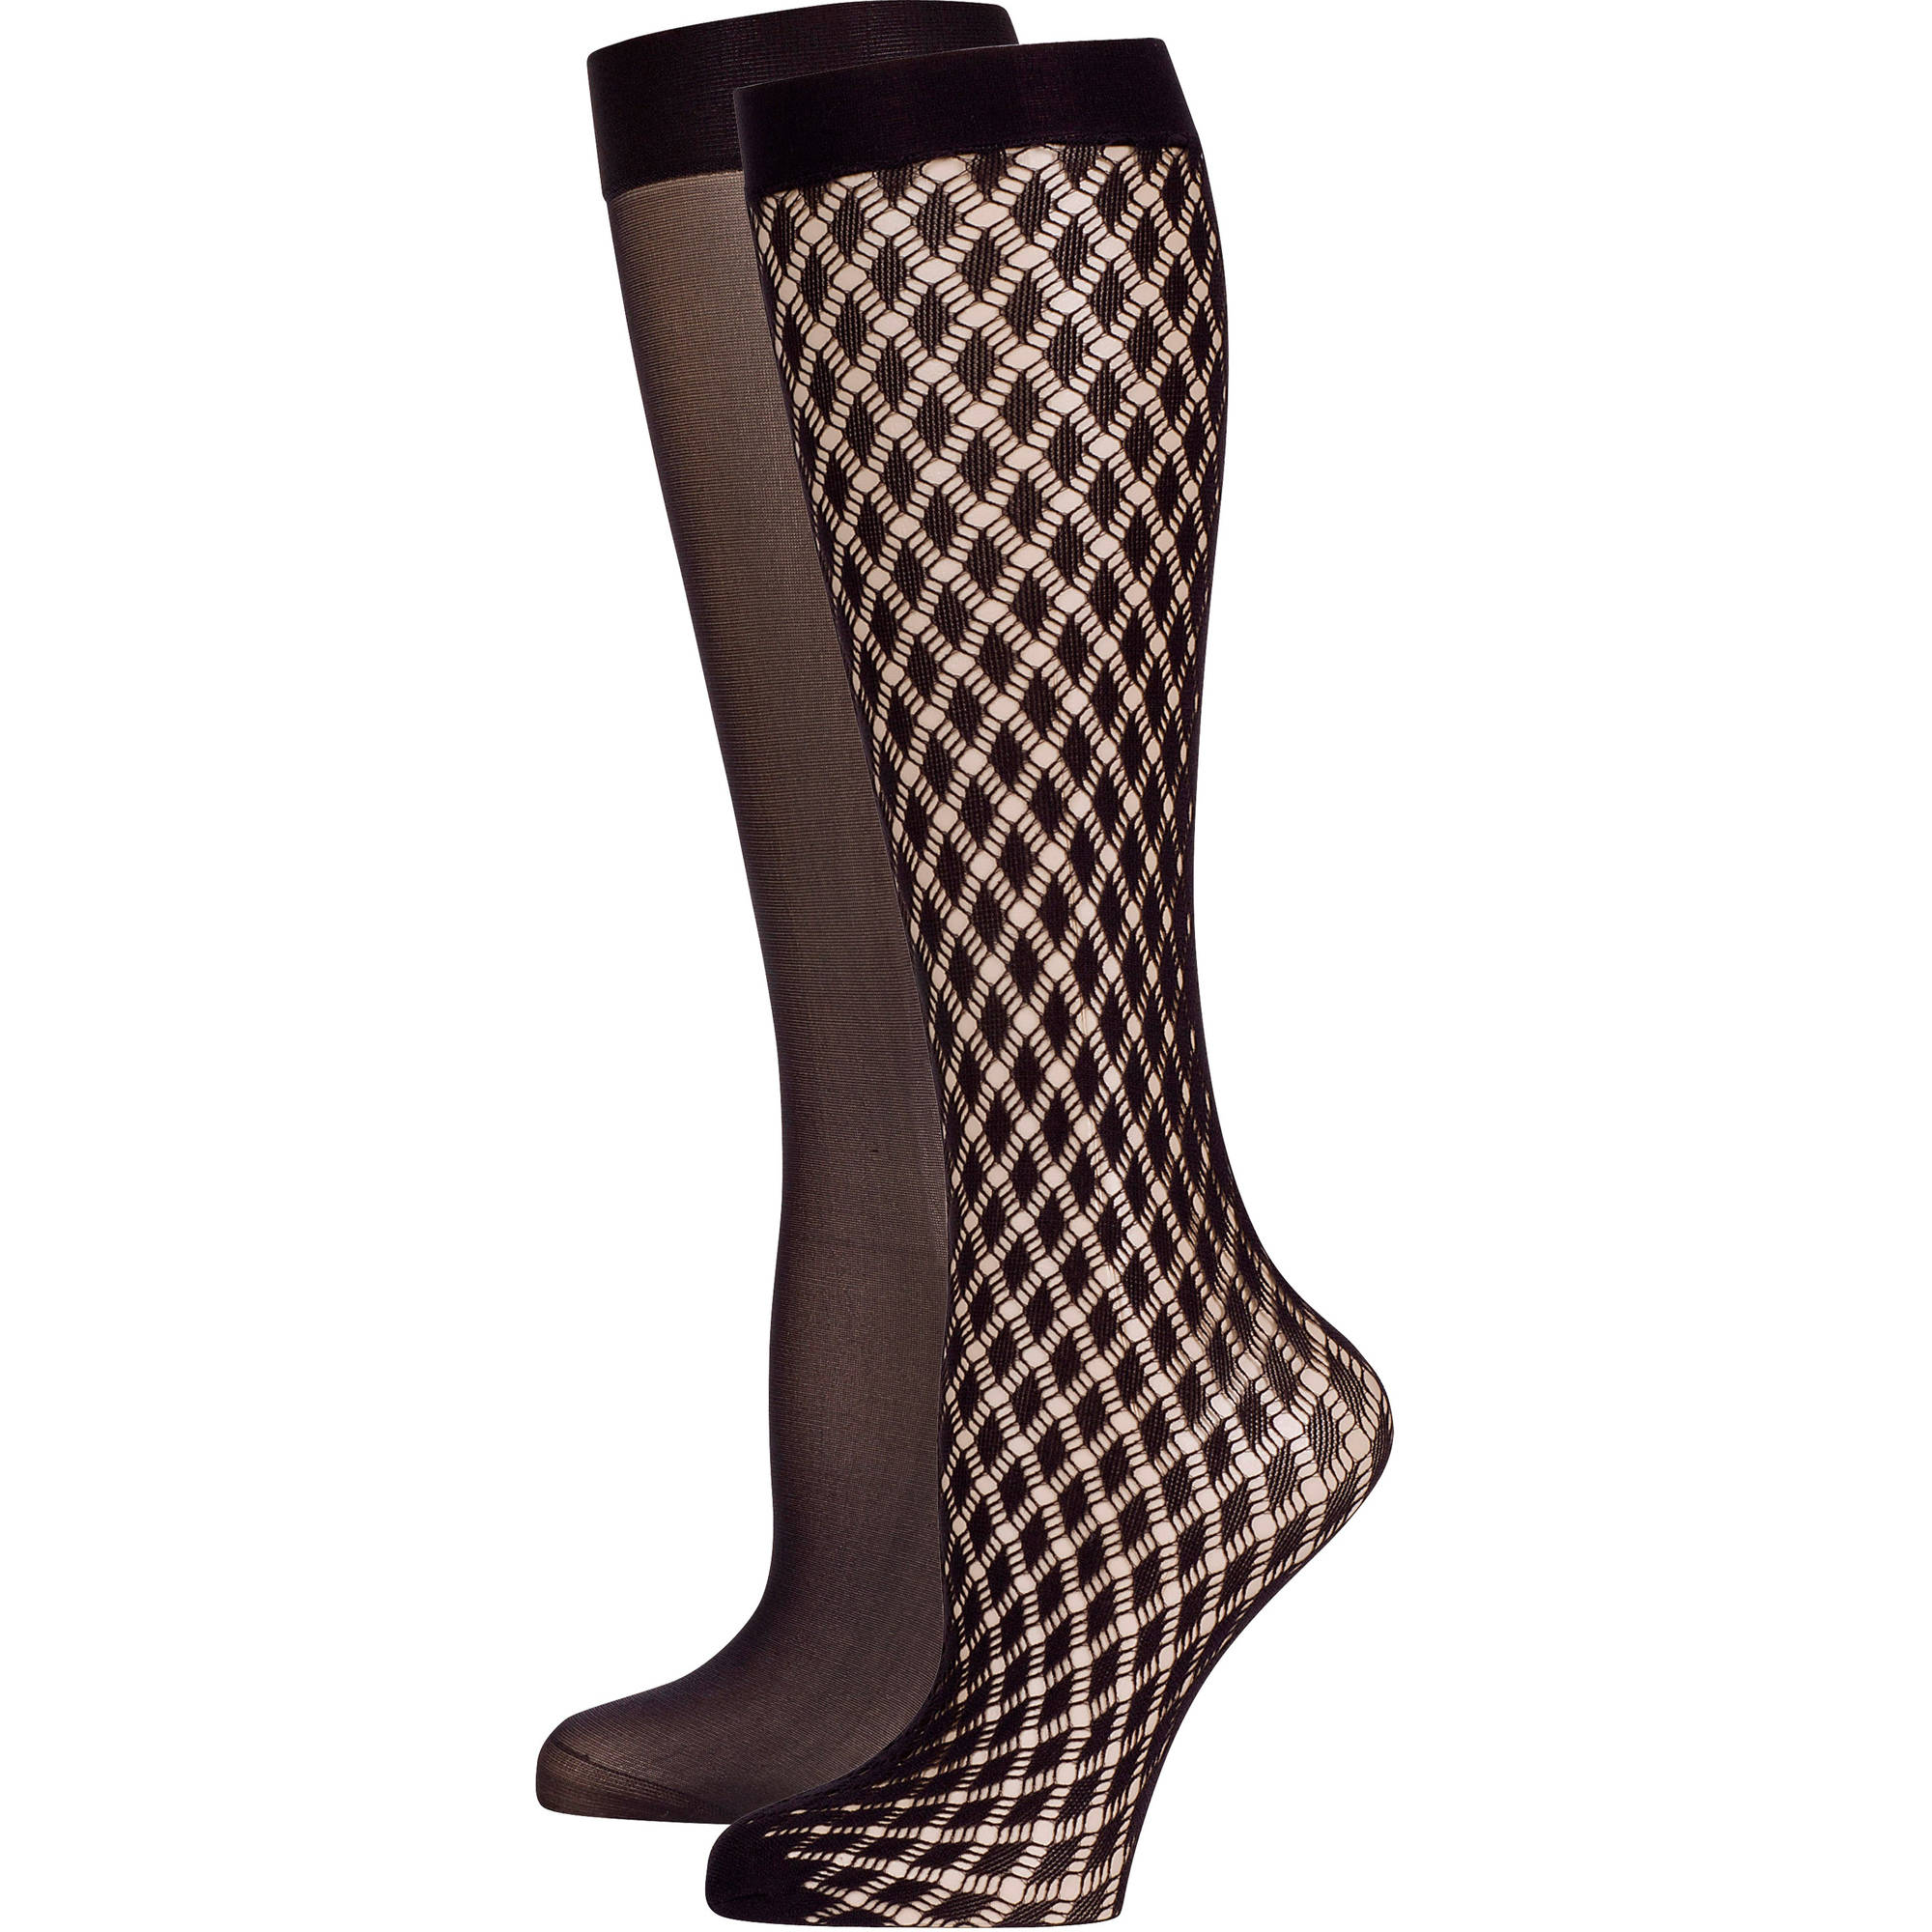 Peds Ladies Diagonal Diamond and Shimmer Trouser Socks, 2 Pairs